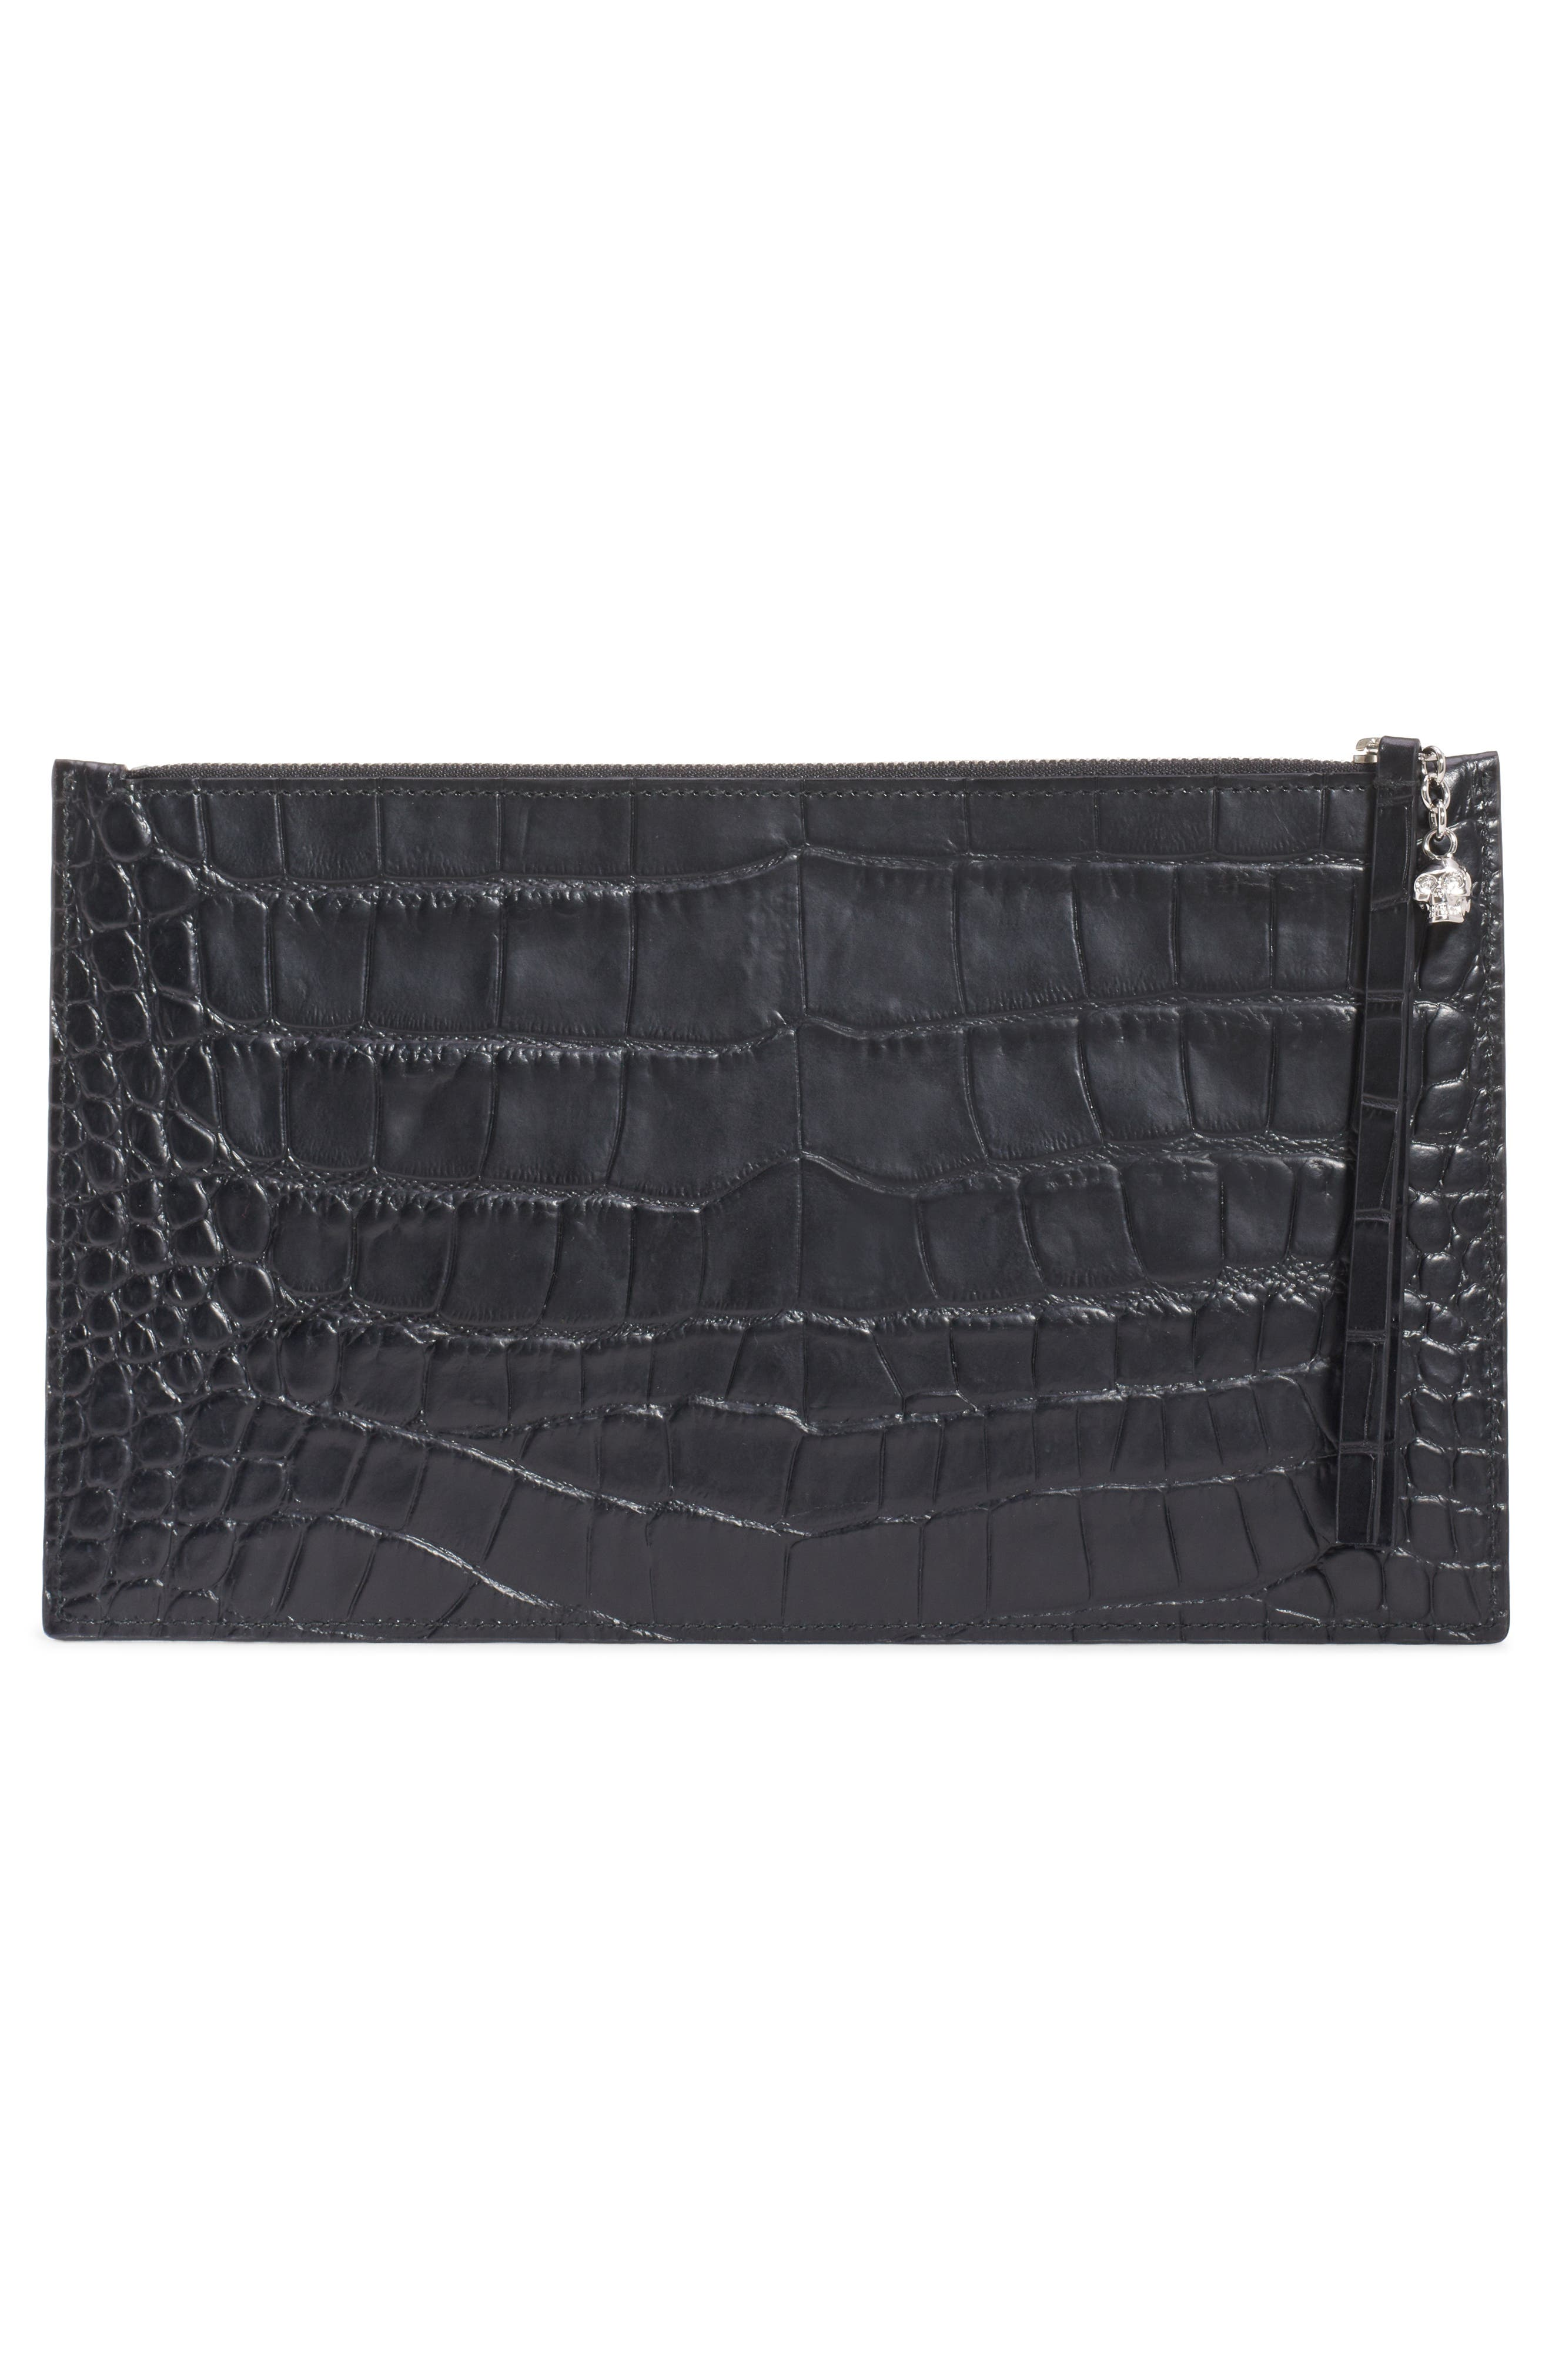 ALEXANDER MCQUEEN, Croc Embossed Leather Pouch, Alternate thumbnail 3, color, BLACK